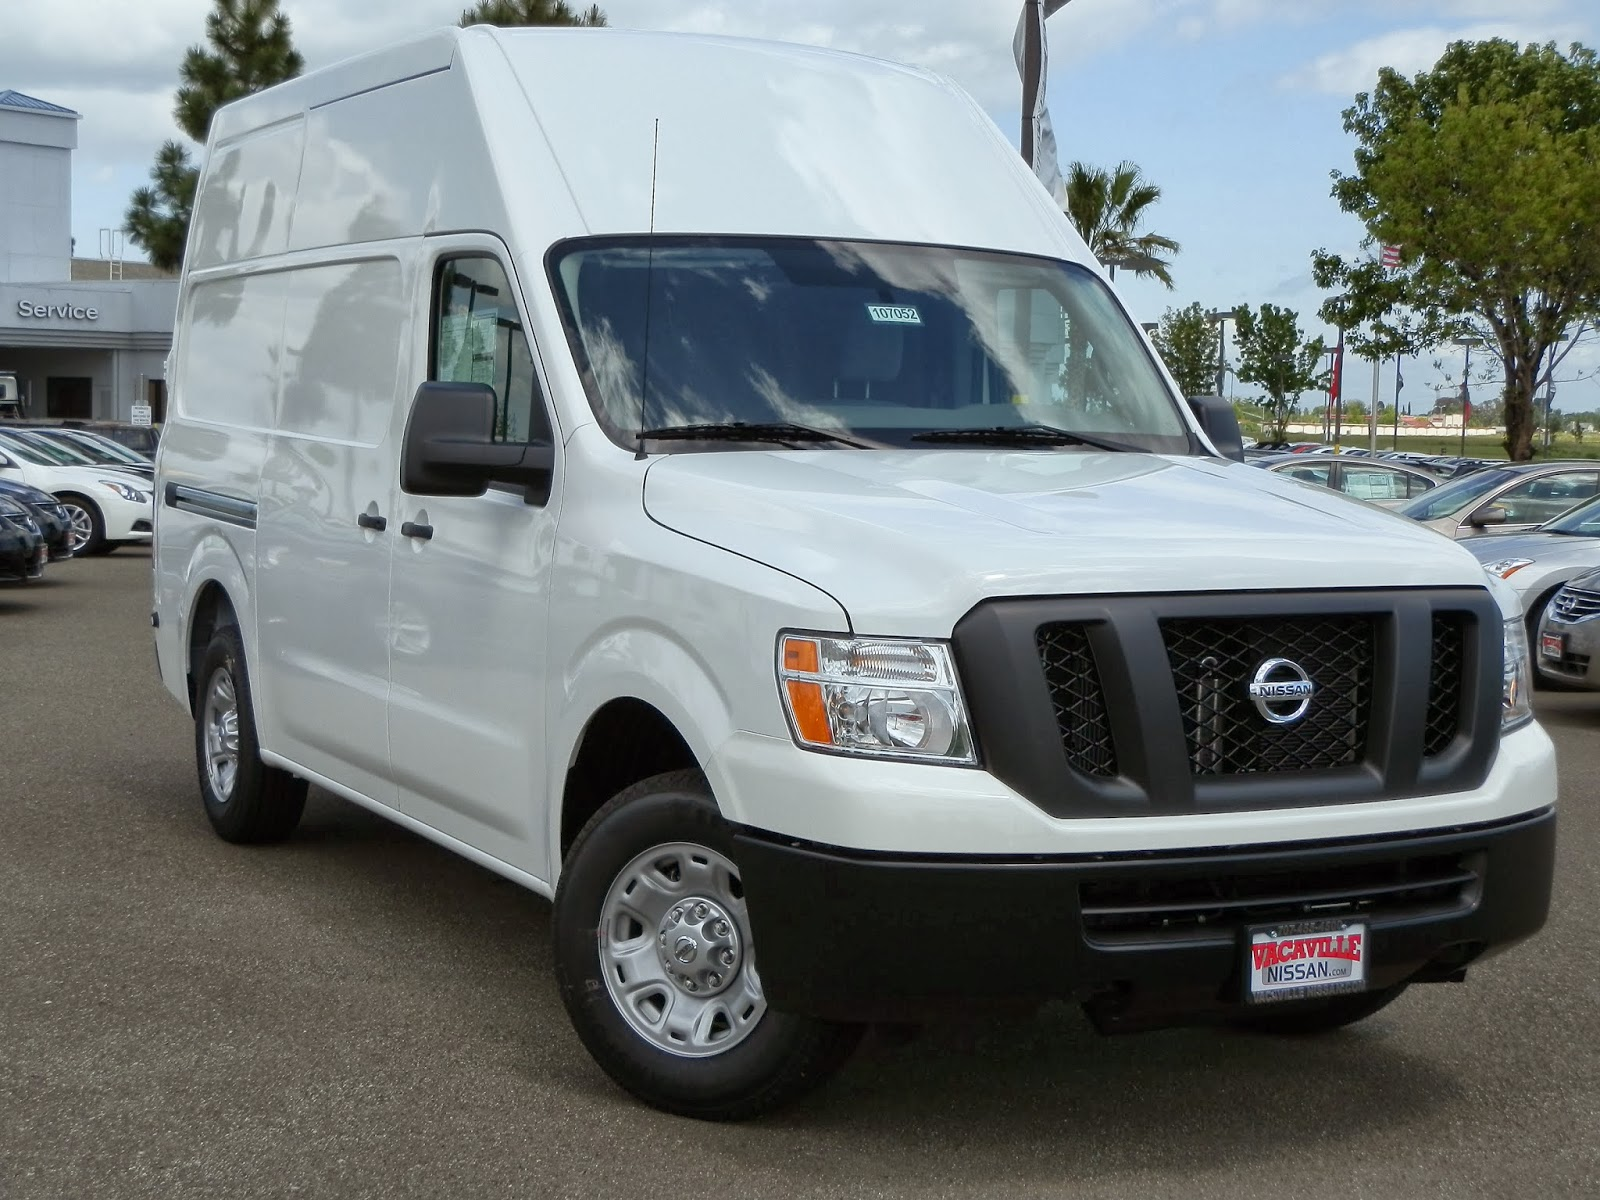 Nissan Nv 3500 For Sale >> Vacaville Nissan Fleet: Vacaville Nissan NV Cargo Van of ...